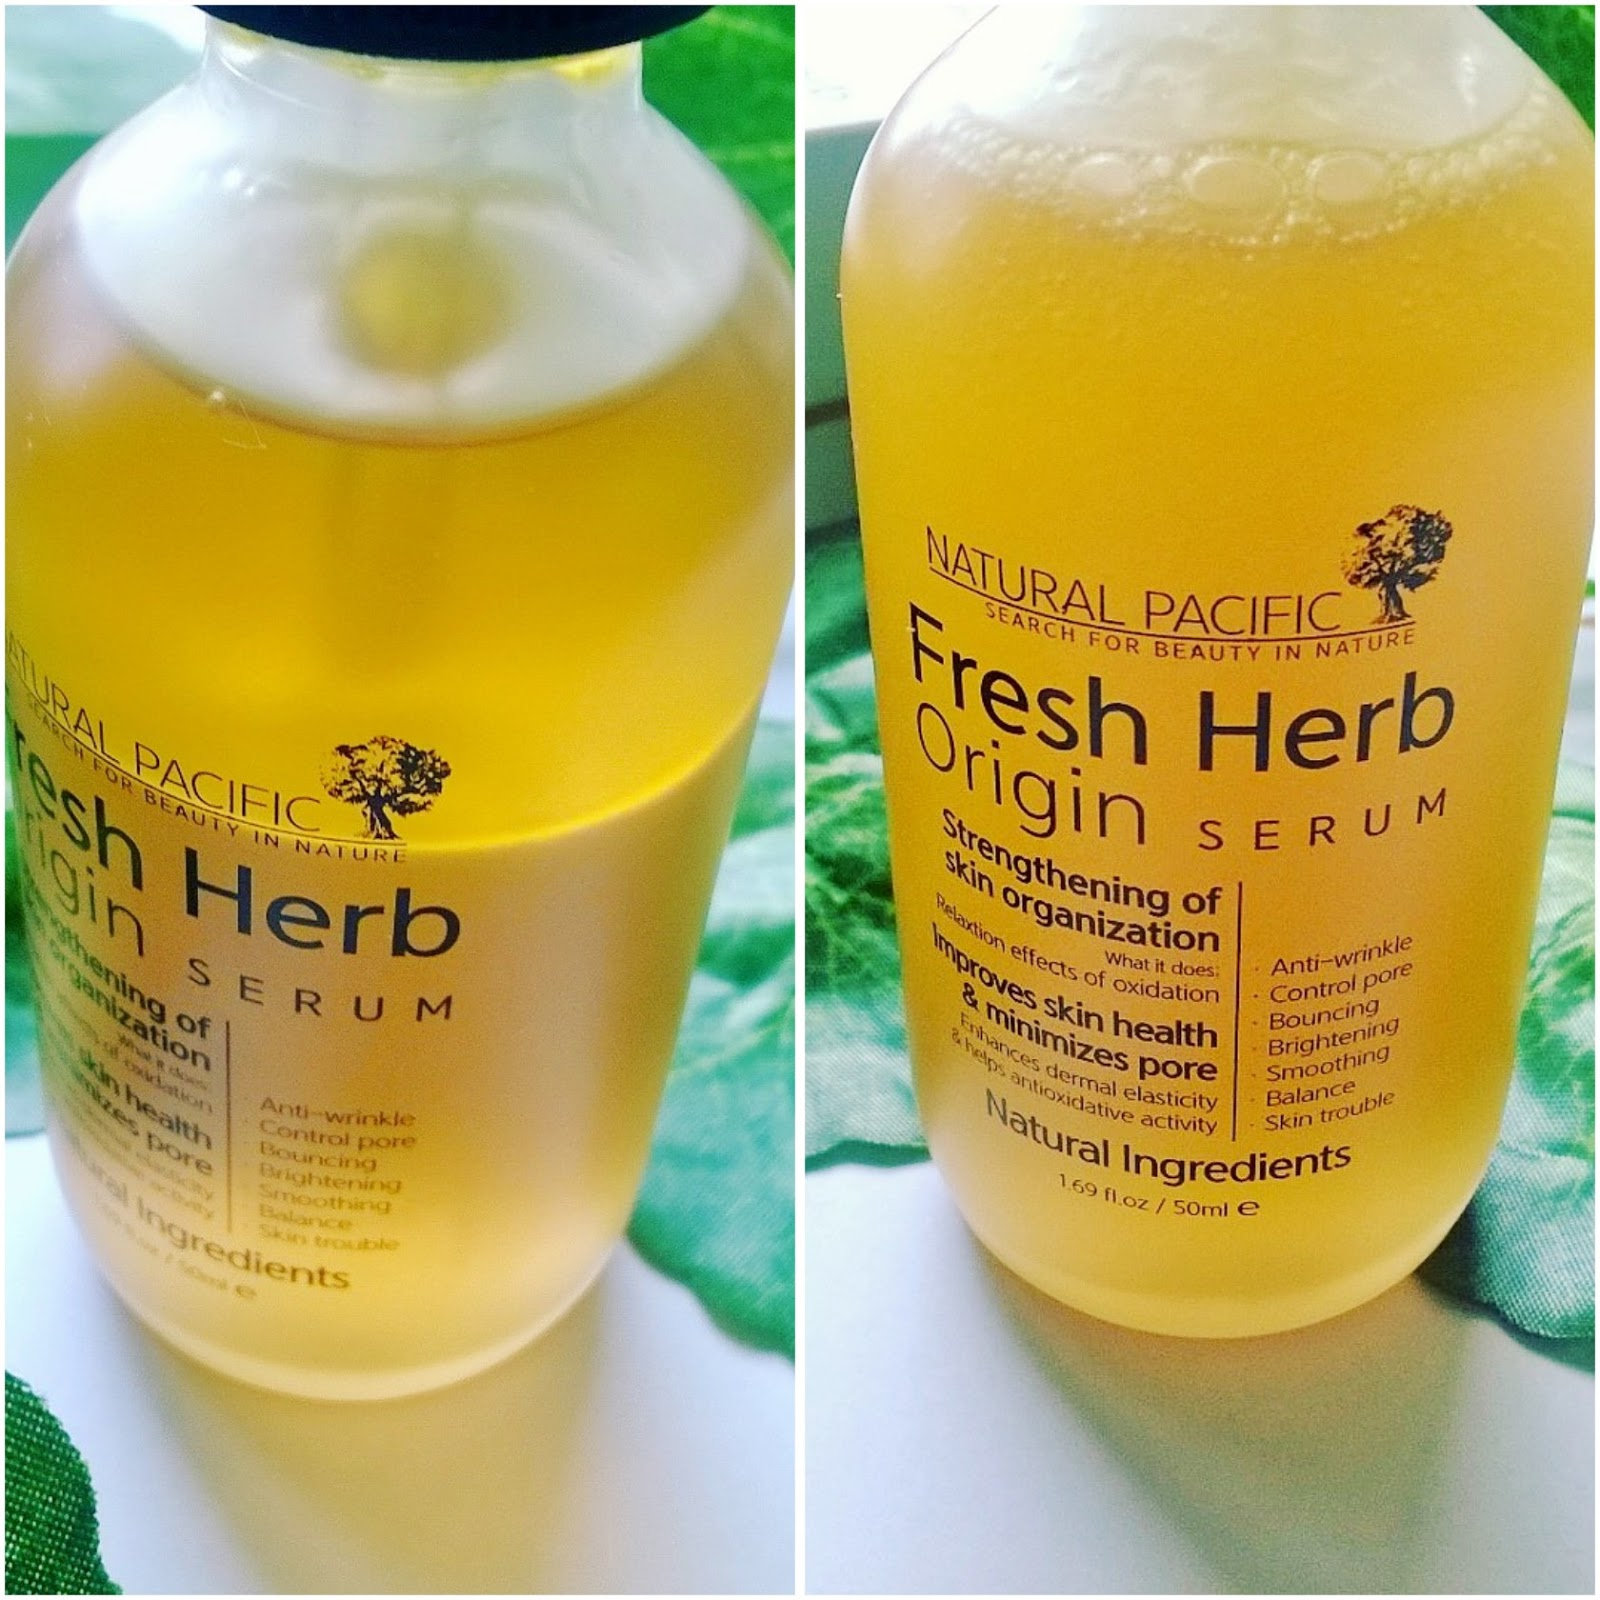 Review] Natural Pacific Fresh Herb Origin Serum - Beauty & Dewdrop Blog